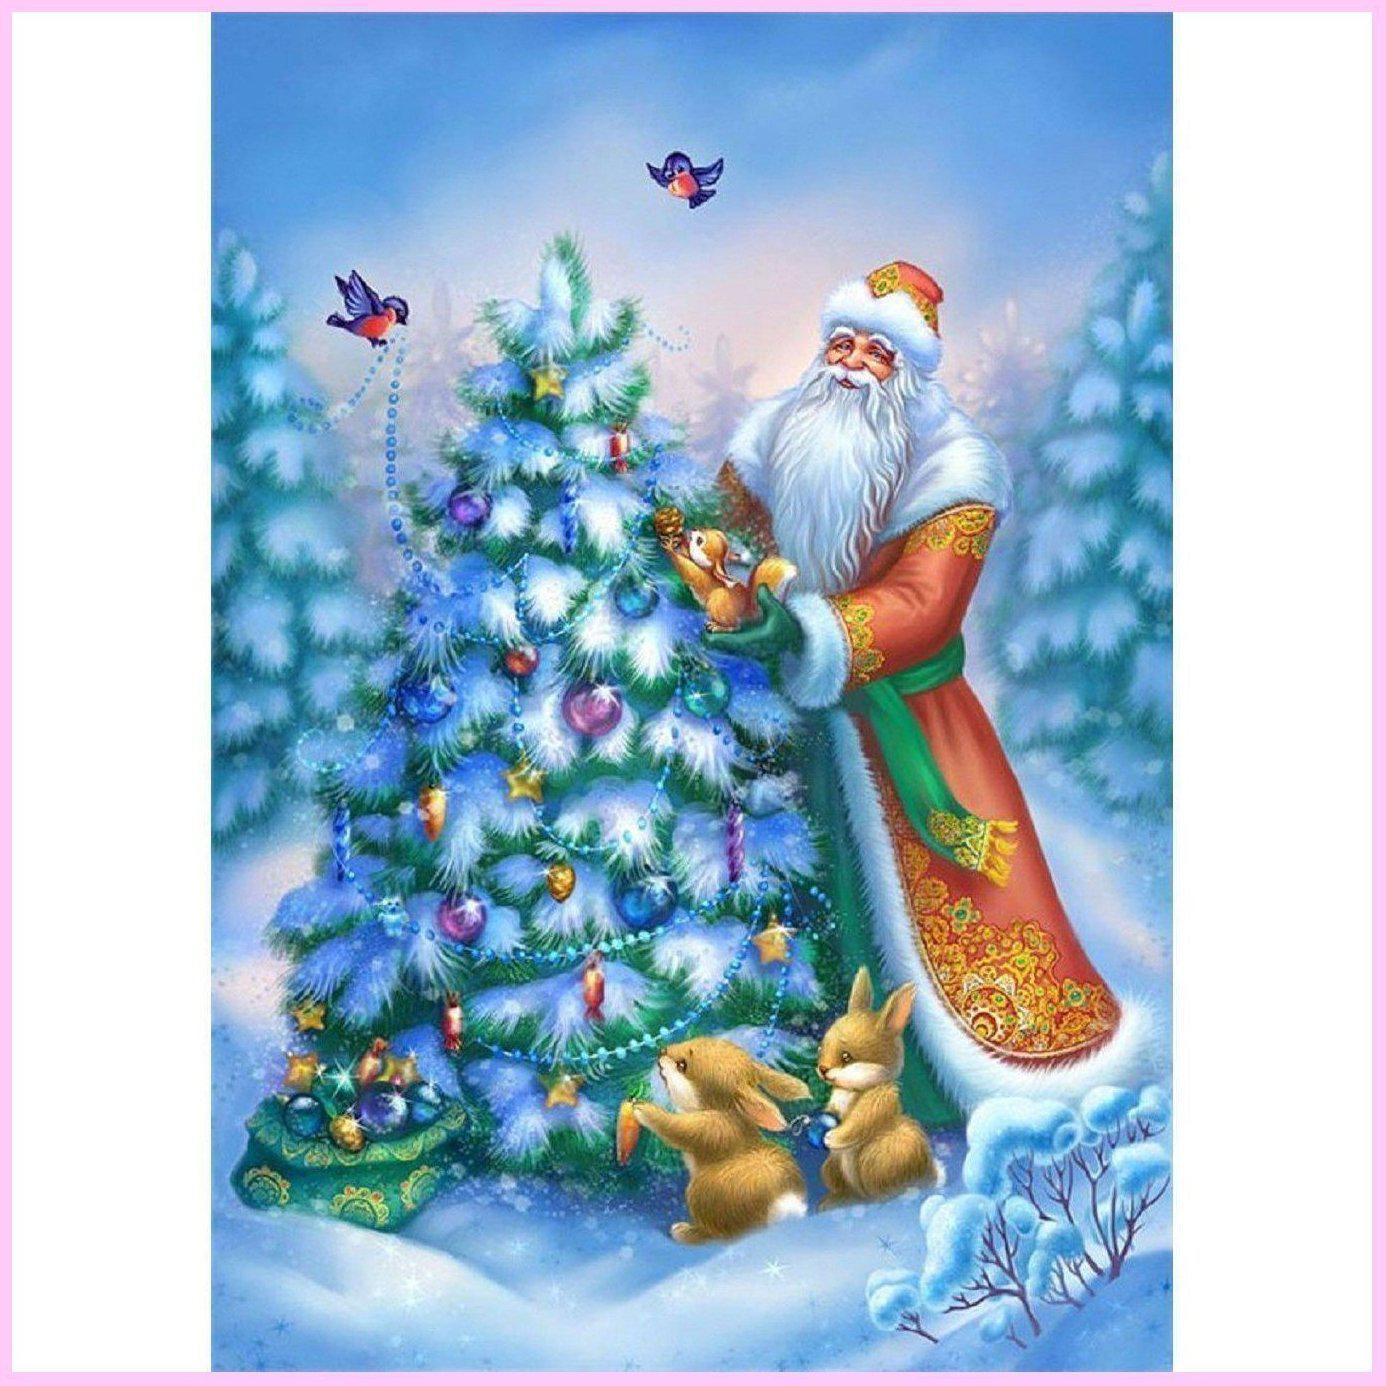 Santa's Christmas Tree - Christmas Full Drill Diamond Painting Kit-Diamond Painting Kit-20x25cm (8x10 in)-Square-Heartful Diamonds